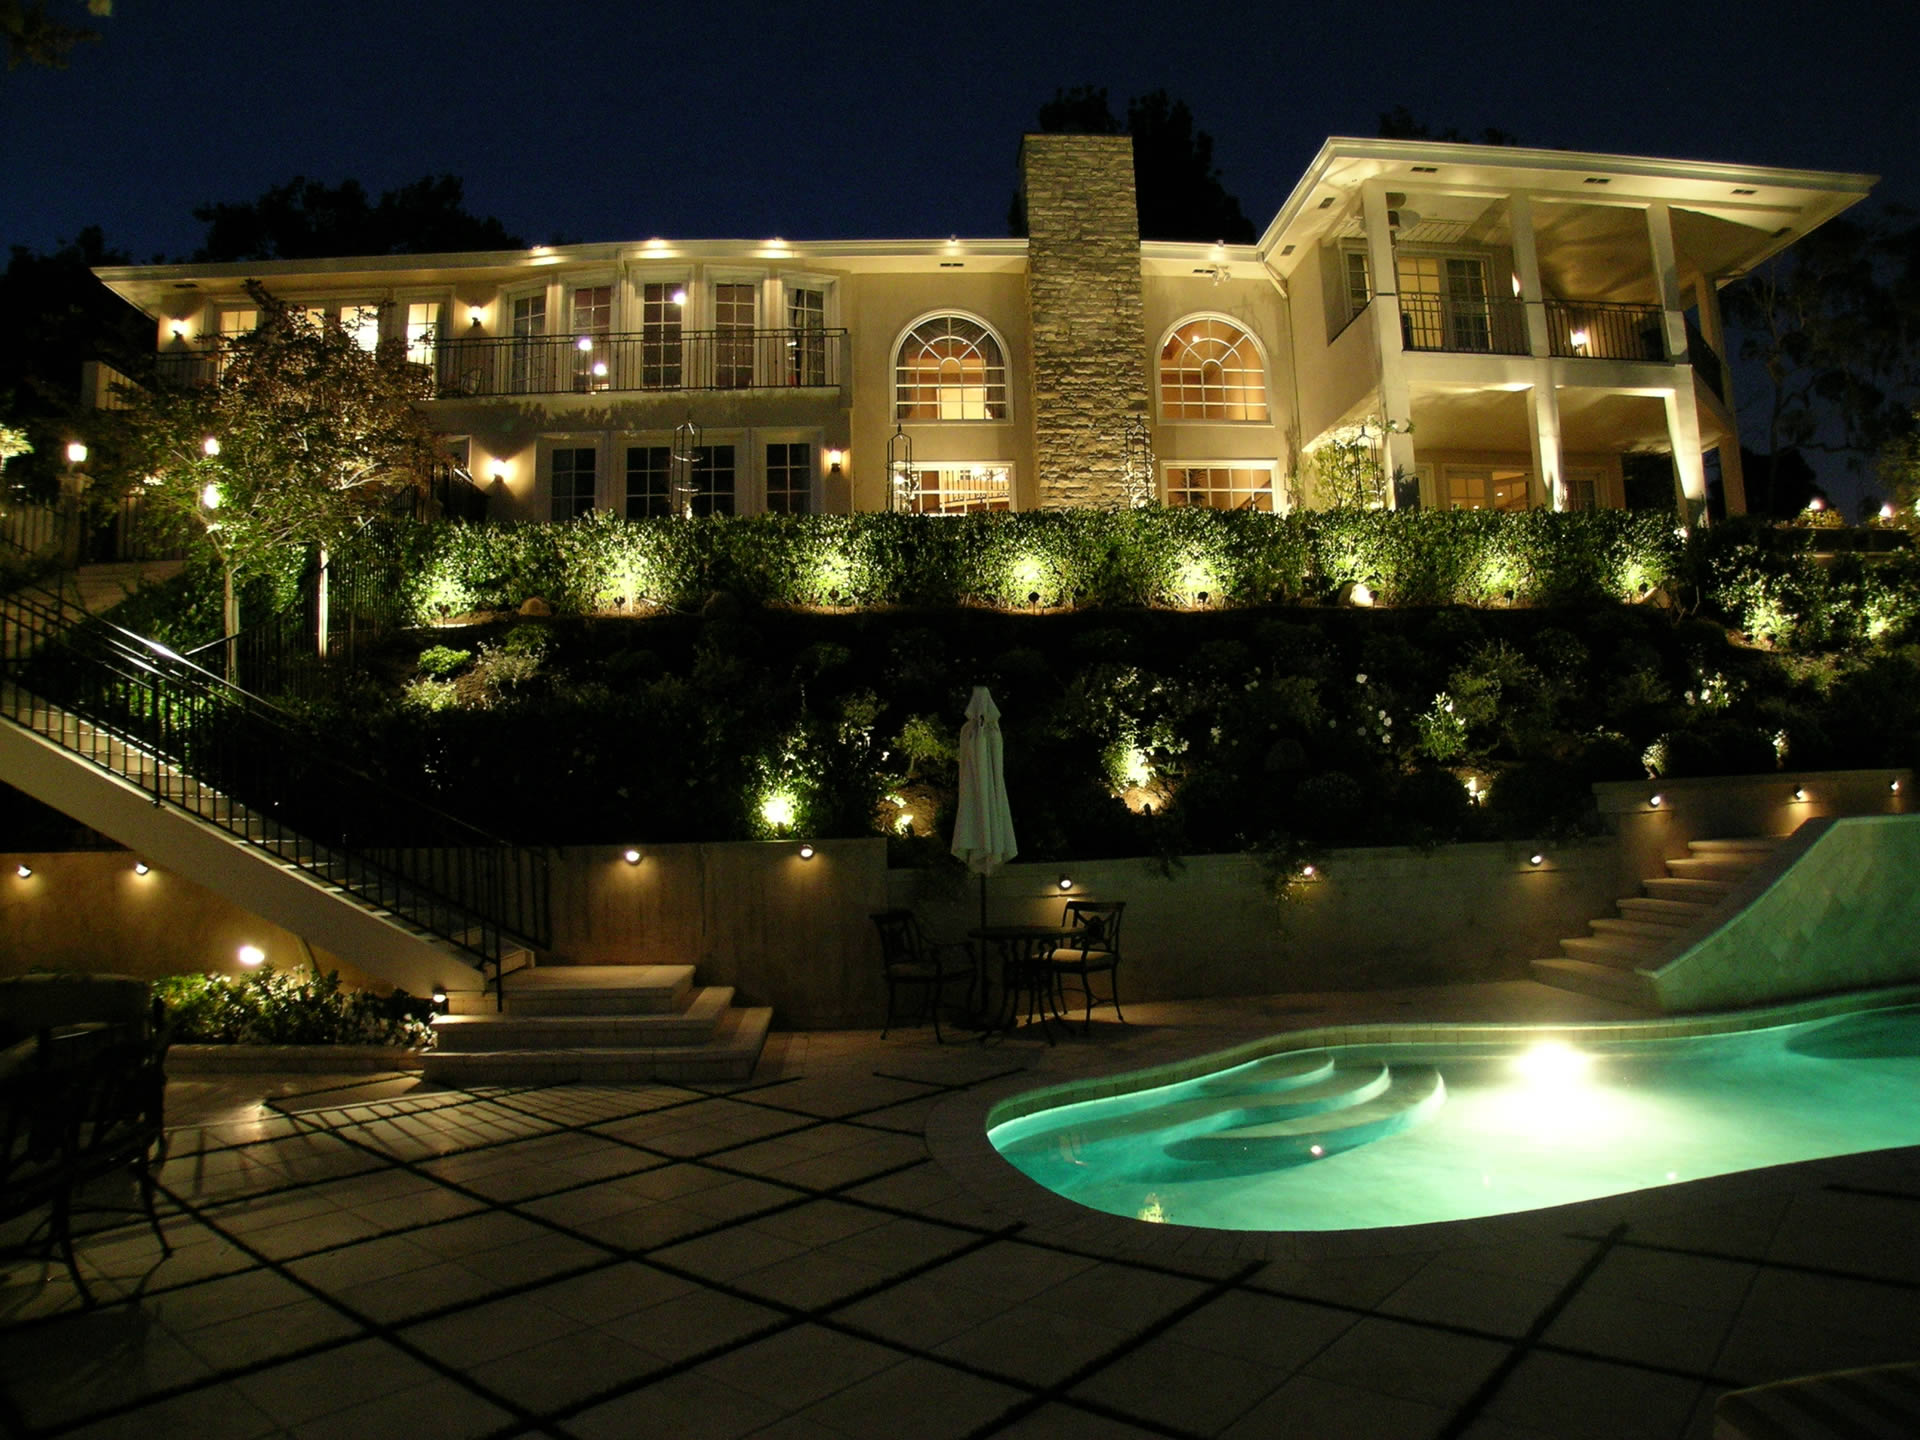 Bel Air Landscape Lighting By Artistic Illumination